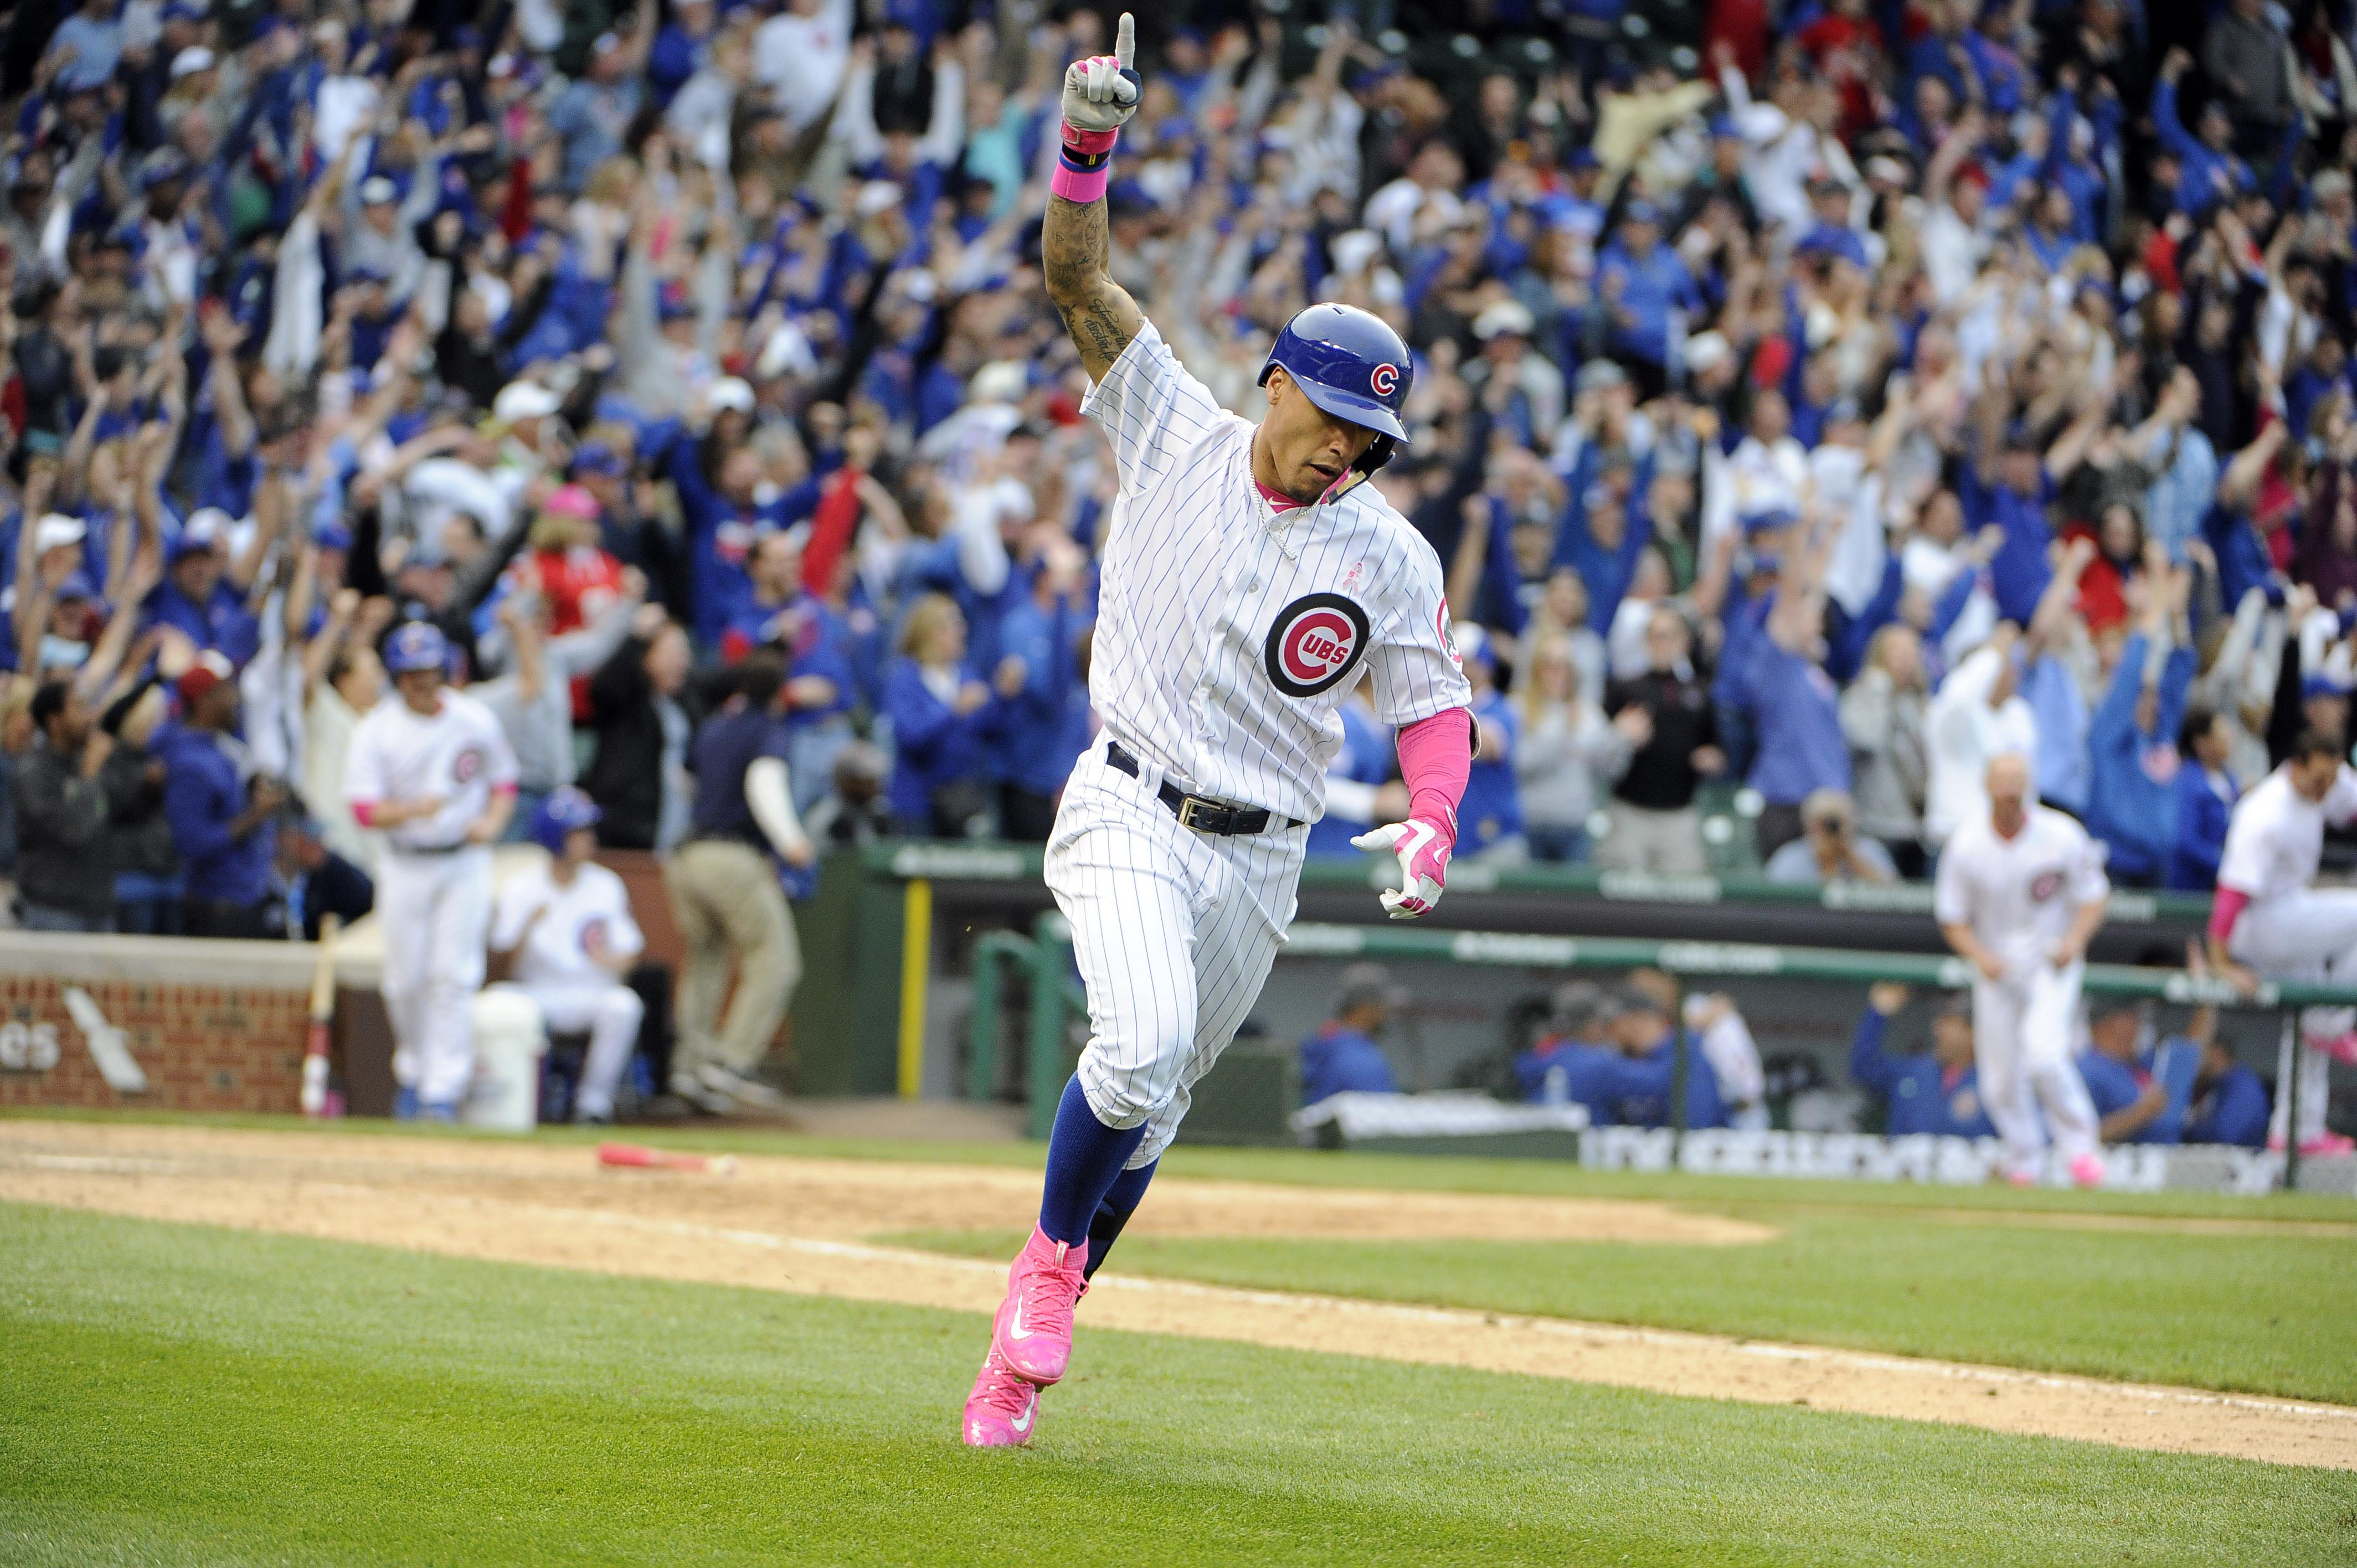 How The 2016 Chicago Cubs Compare To The 2009 New York Yankees